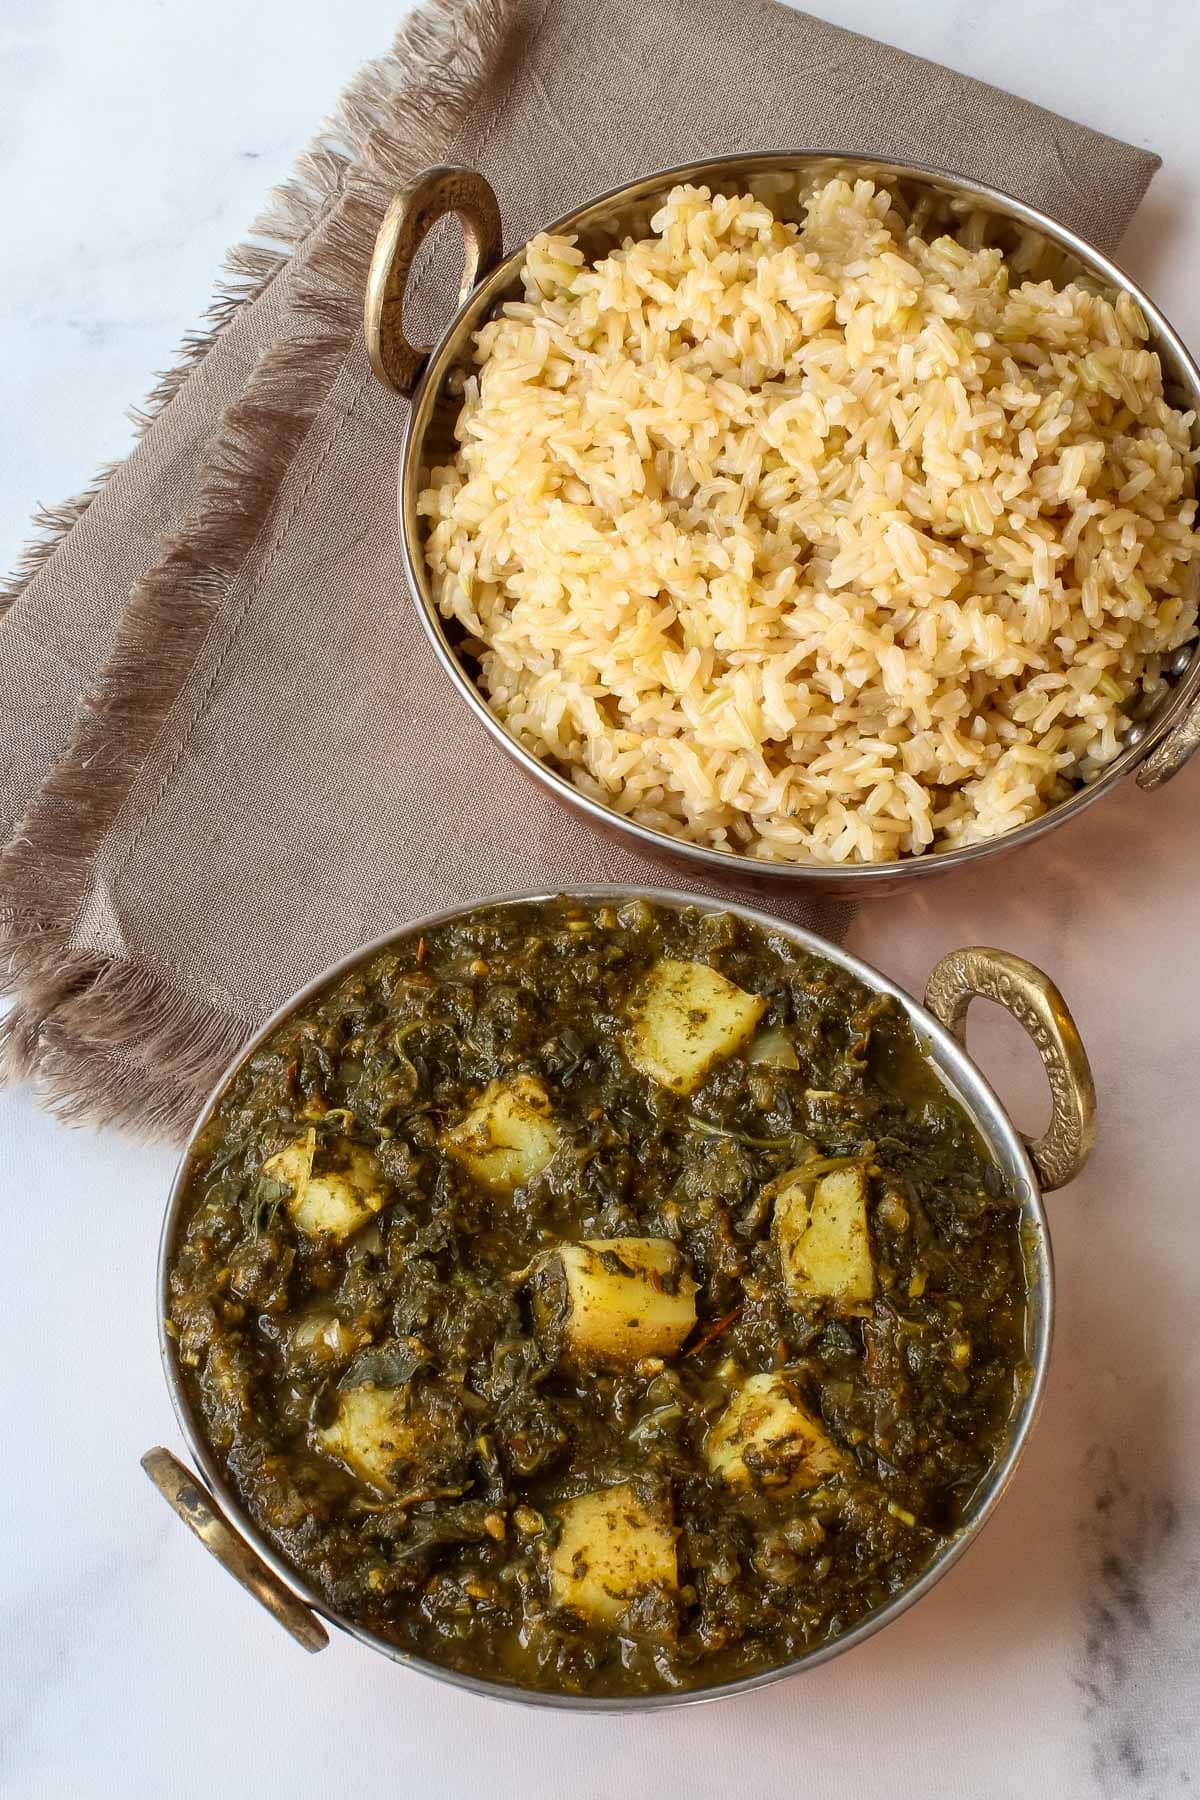 Copper dishes of spinach potato curry and brown rice.